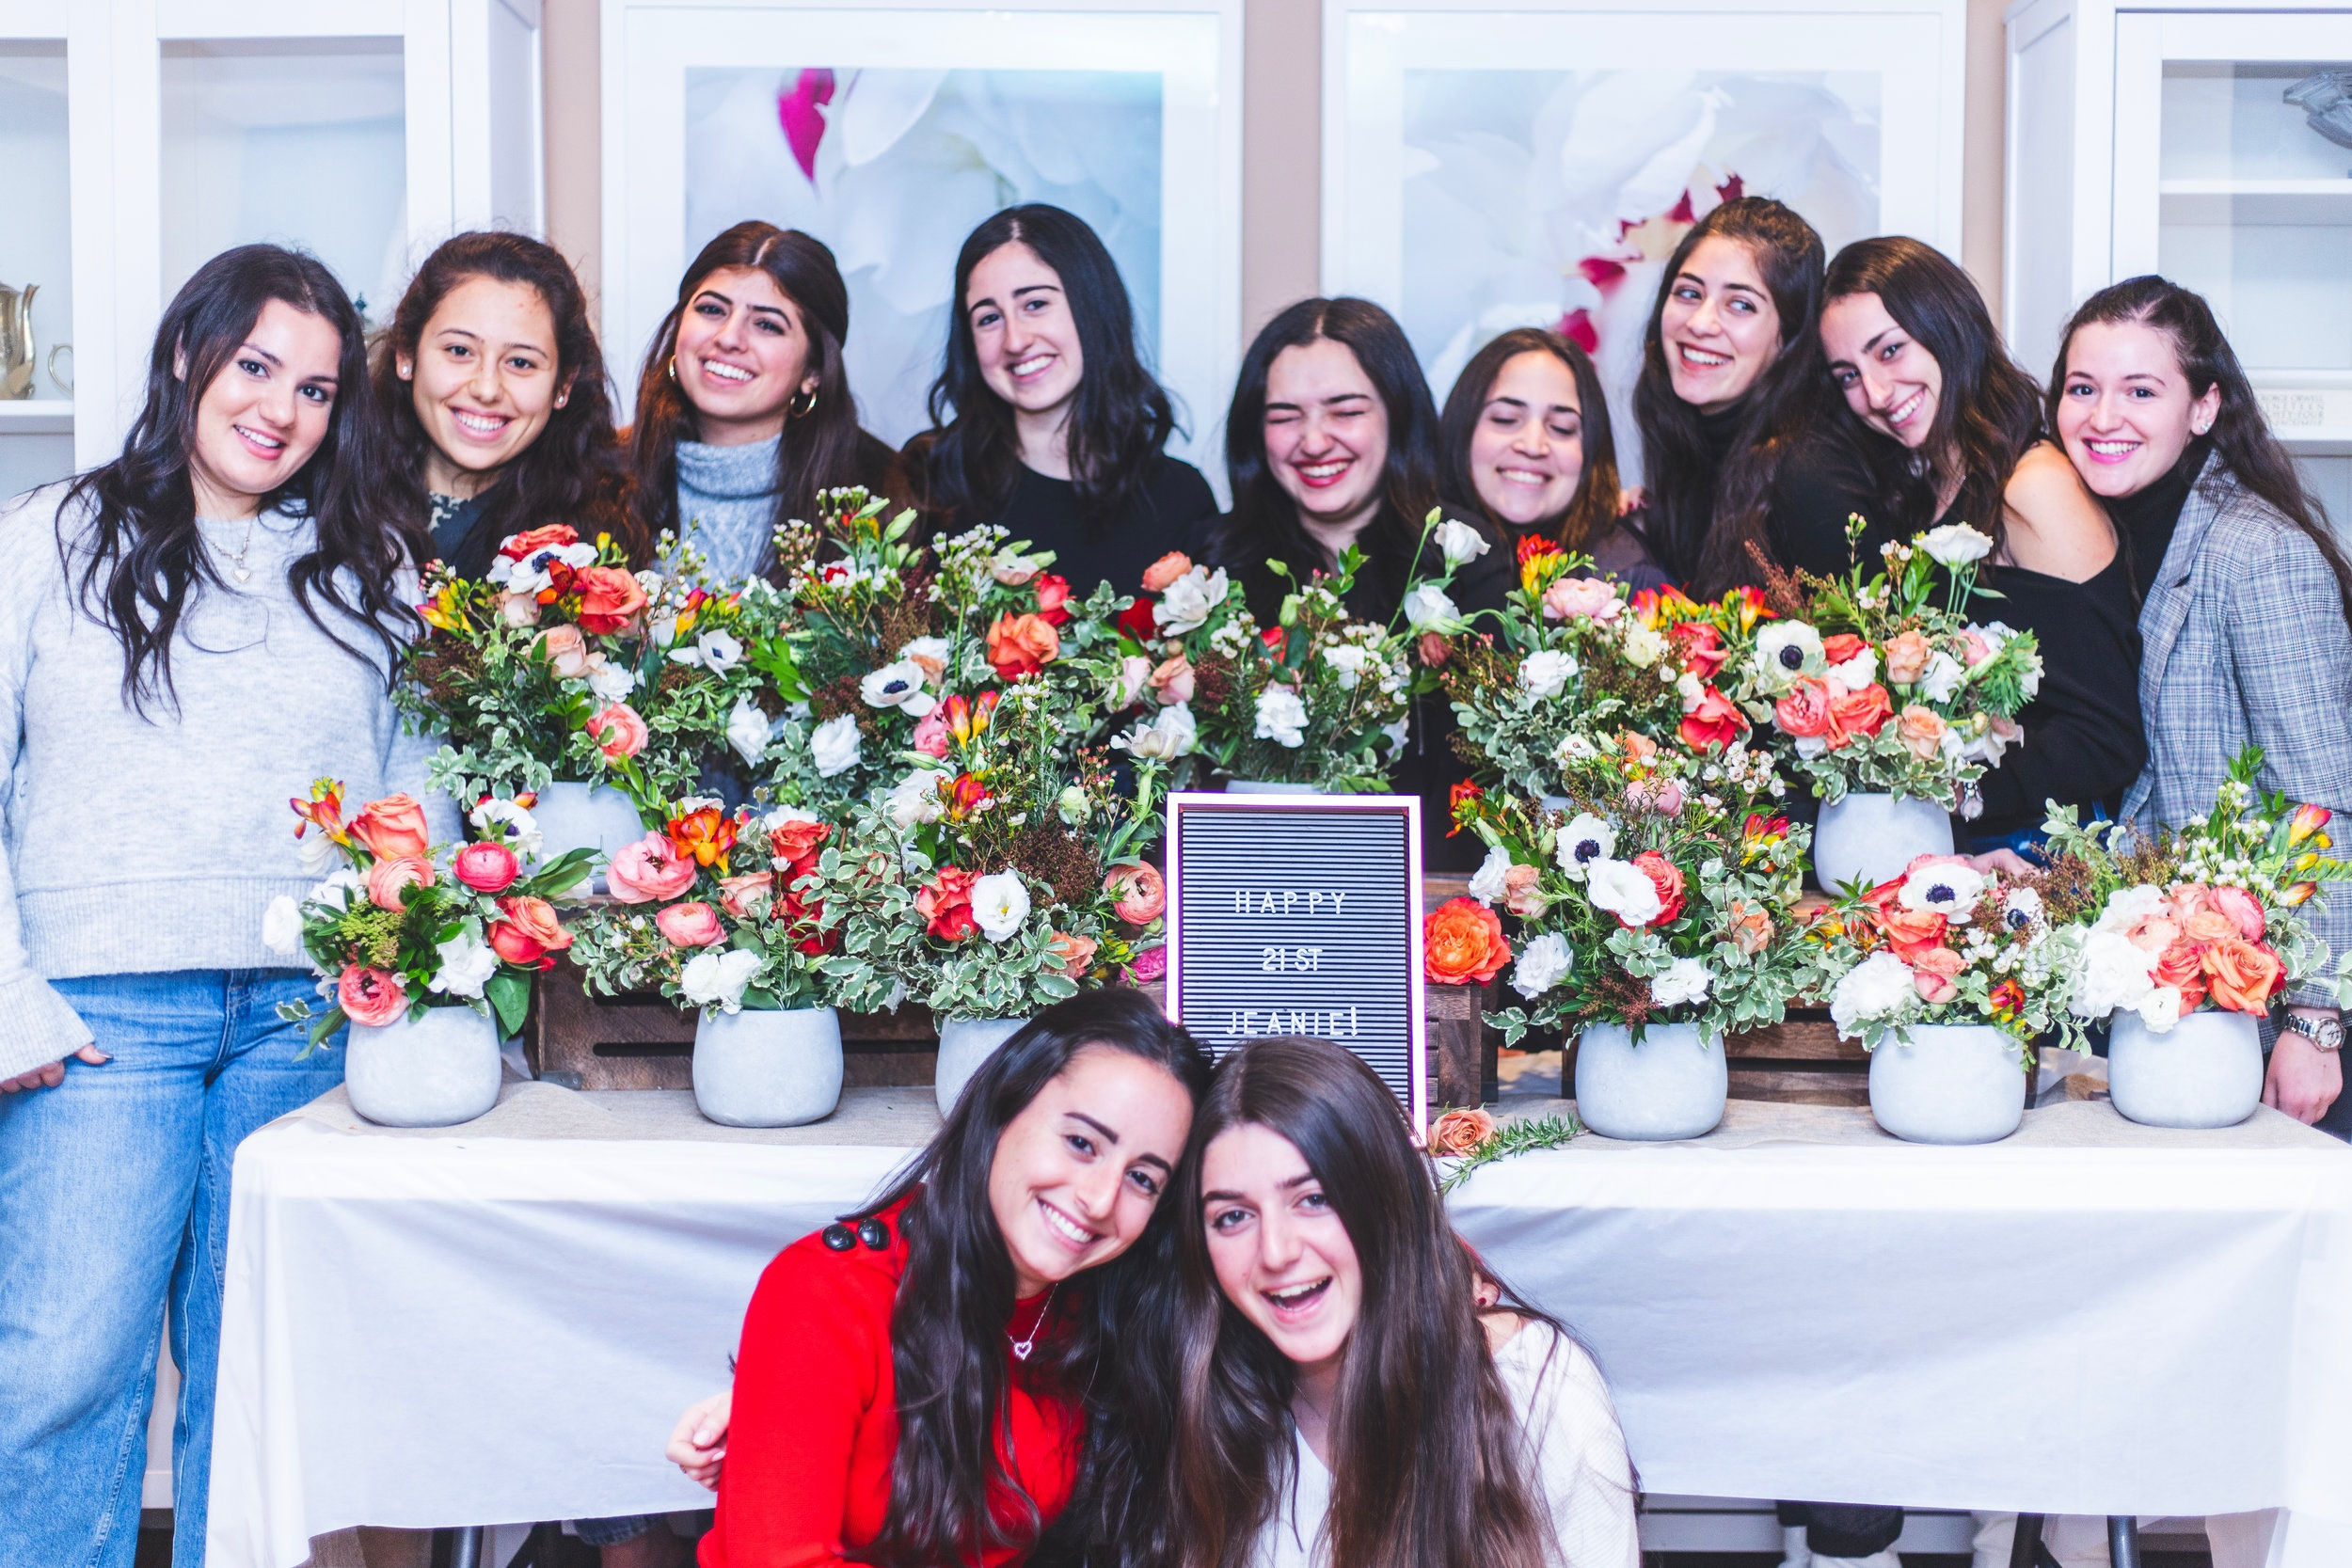 Flower Workshops - In your own home/location of choice in NYC, this floral arranging workshop Includes flowers, vases, shears, step by step instruction on making a wild and whimsical flower arrangement, flower market secrets & flower recipe PDF. Professional photography included!